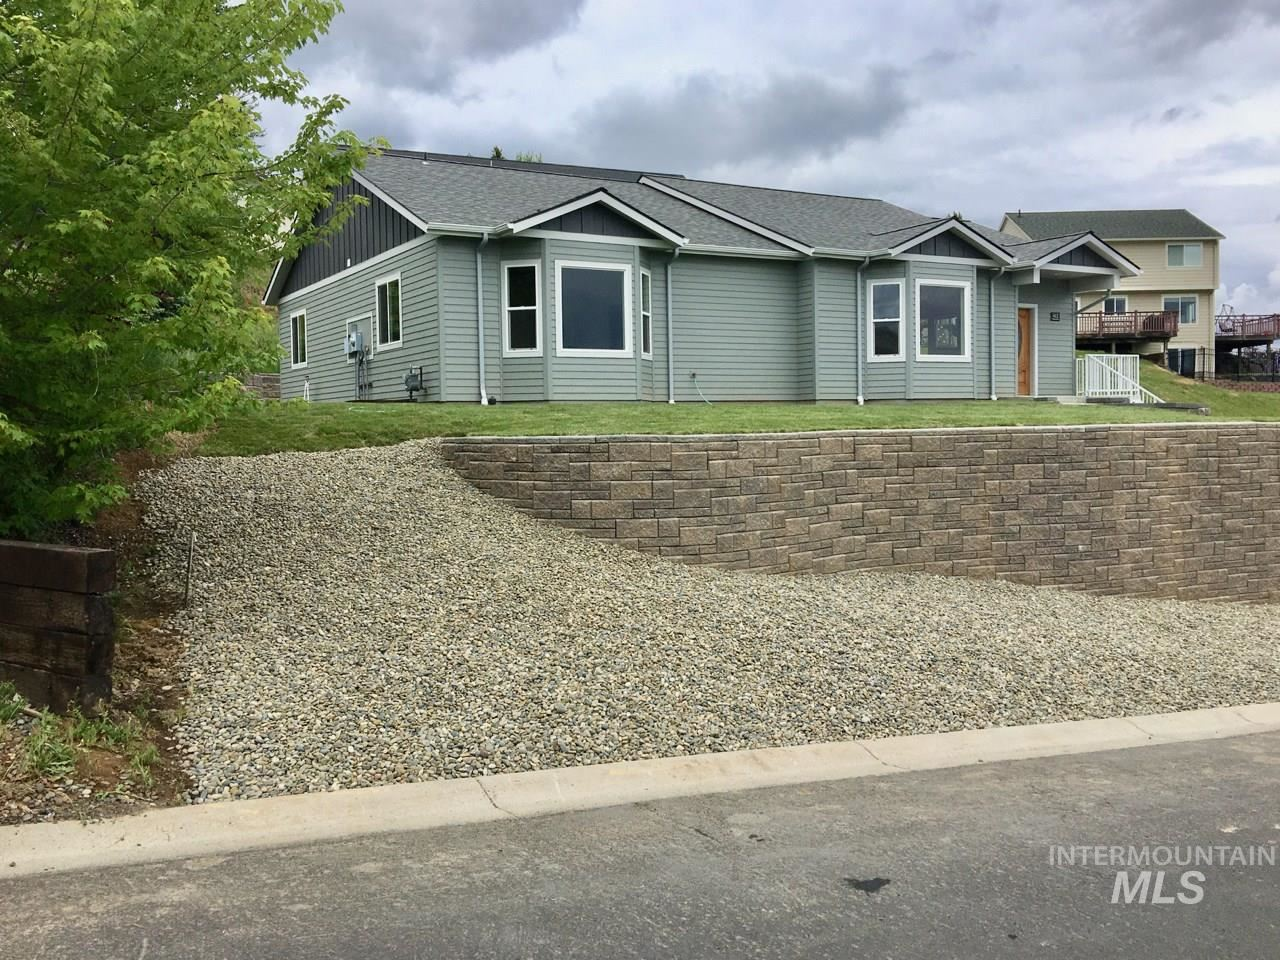 412 Victoria Drive, Moscow, ID 83843 - MLS#: 98751892